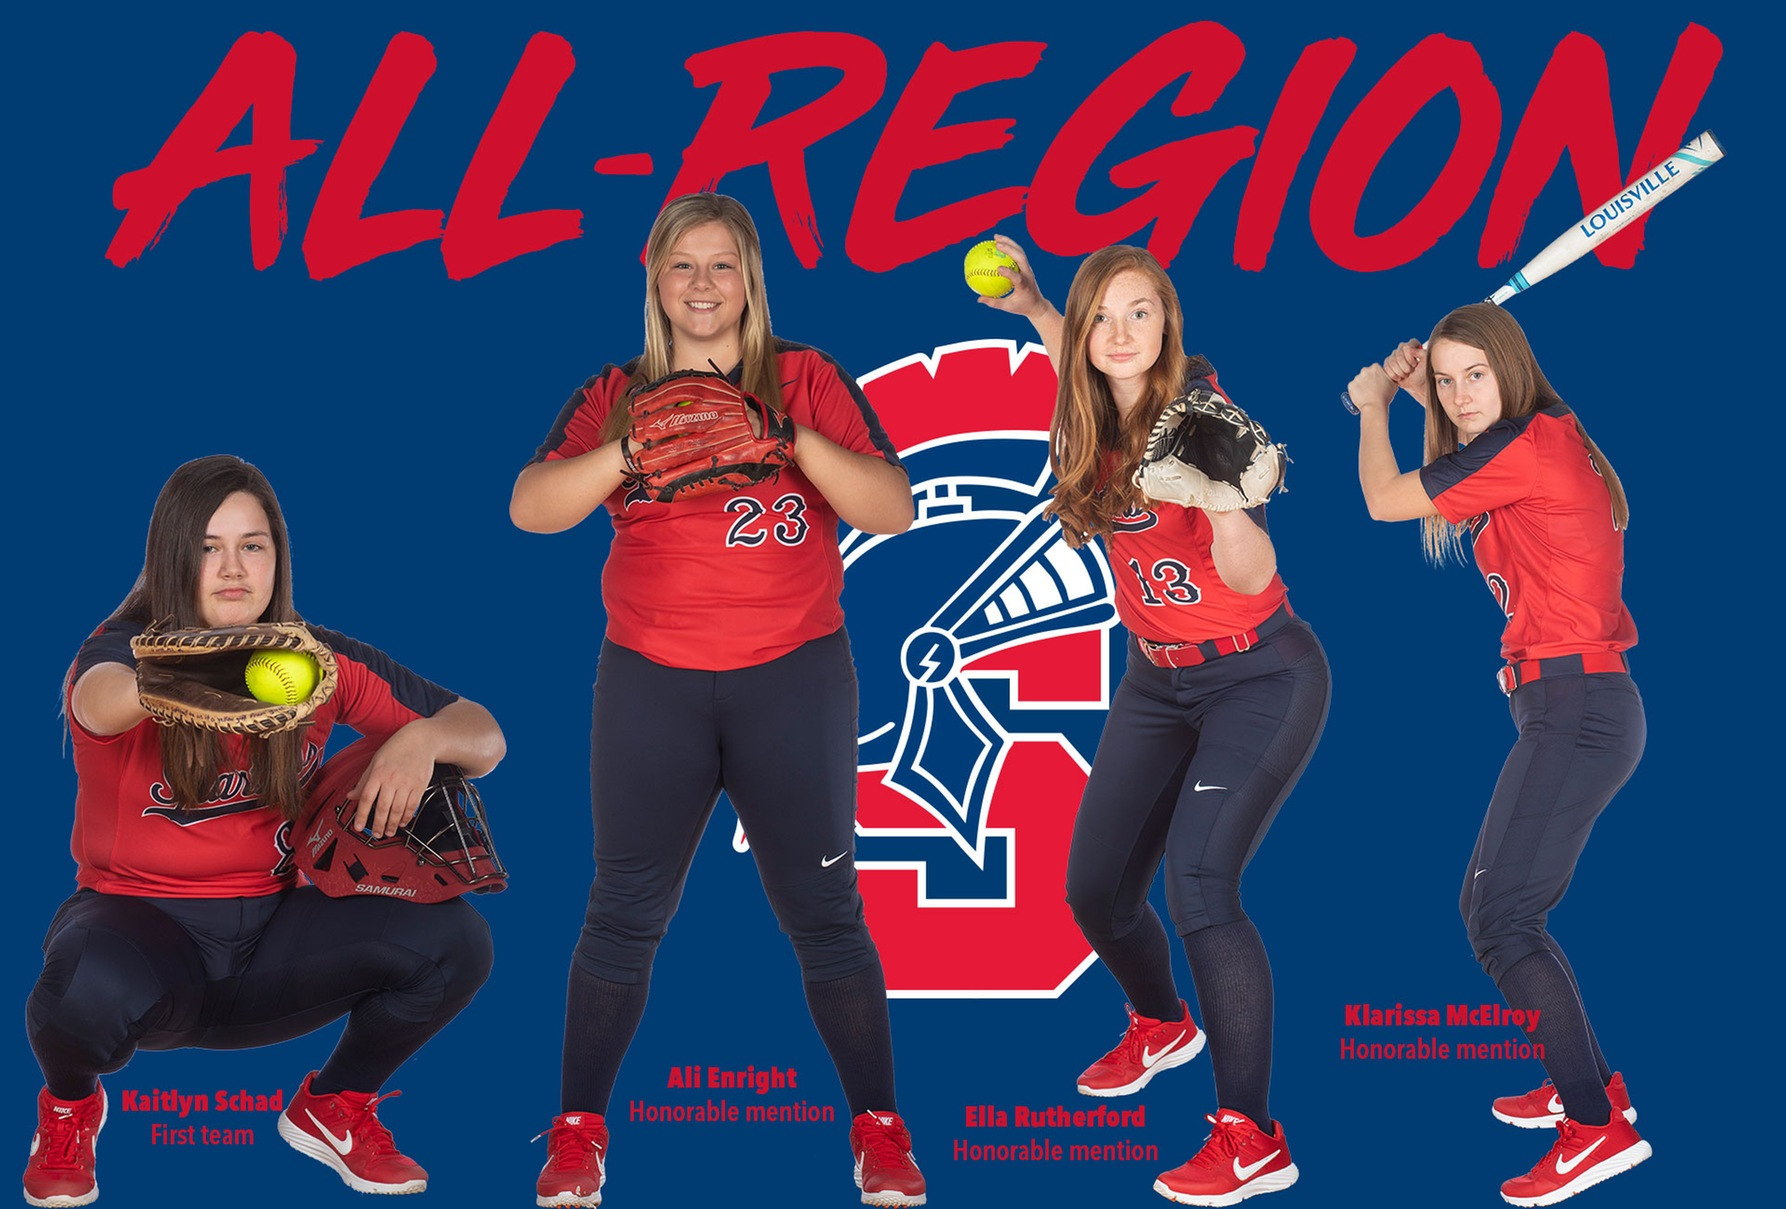 Southwestern's Kaitlyn Schad, Ali Enright, Ella Rutherford and Klarissa McElroy all earned all-region honors.